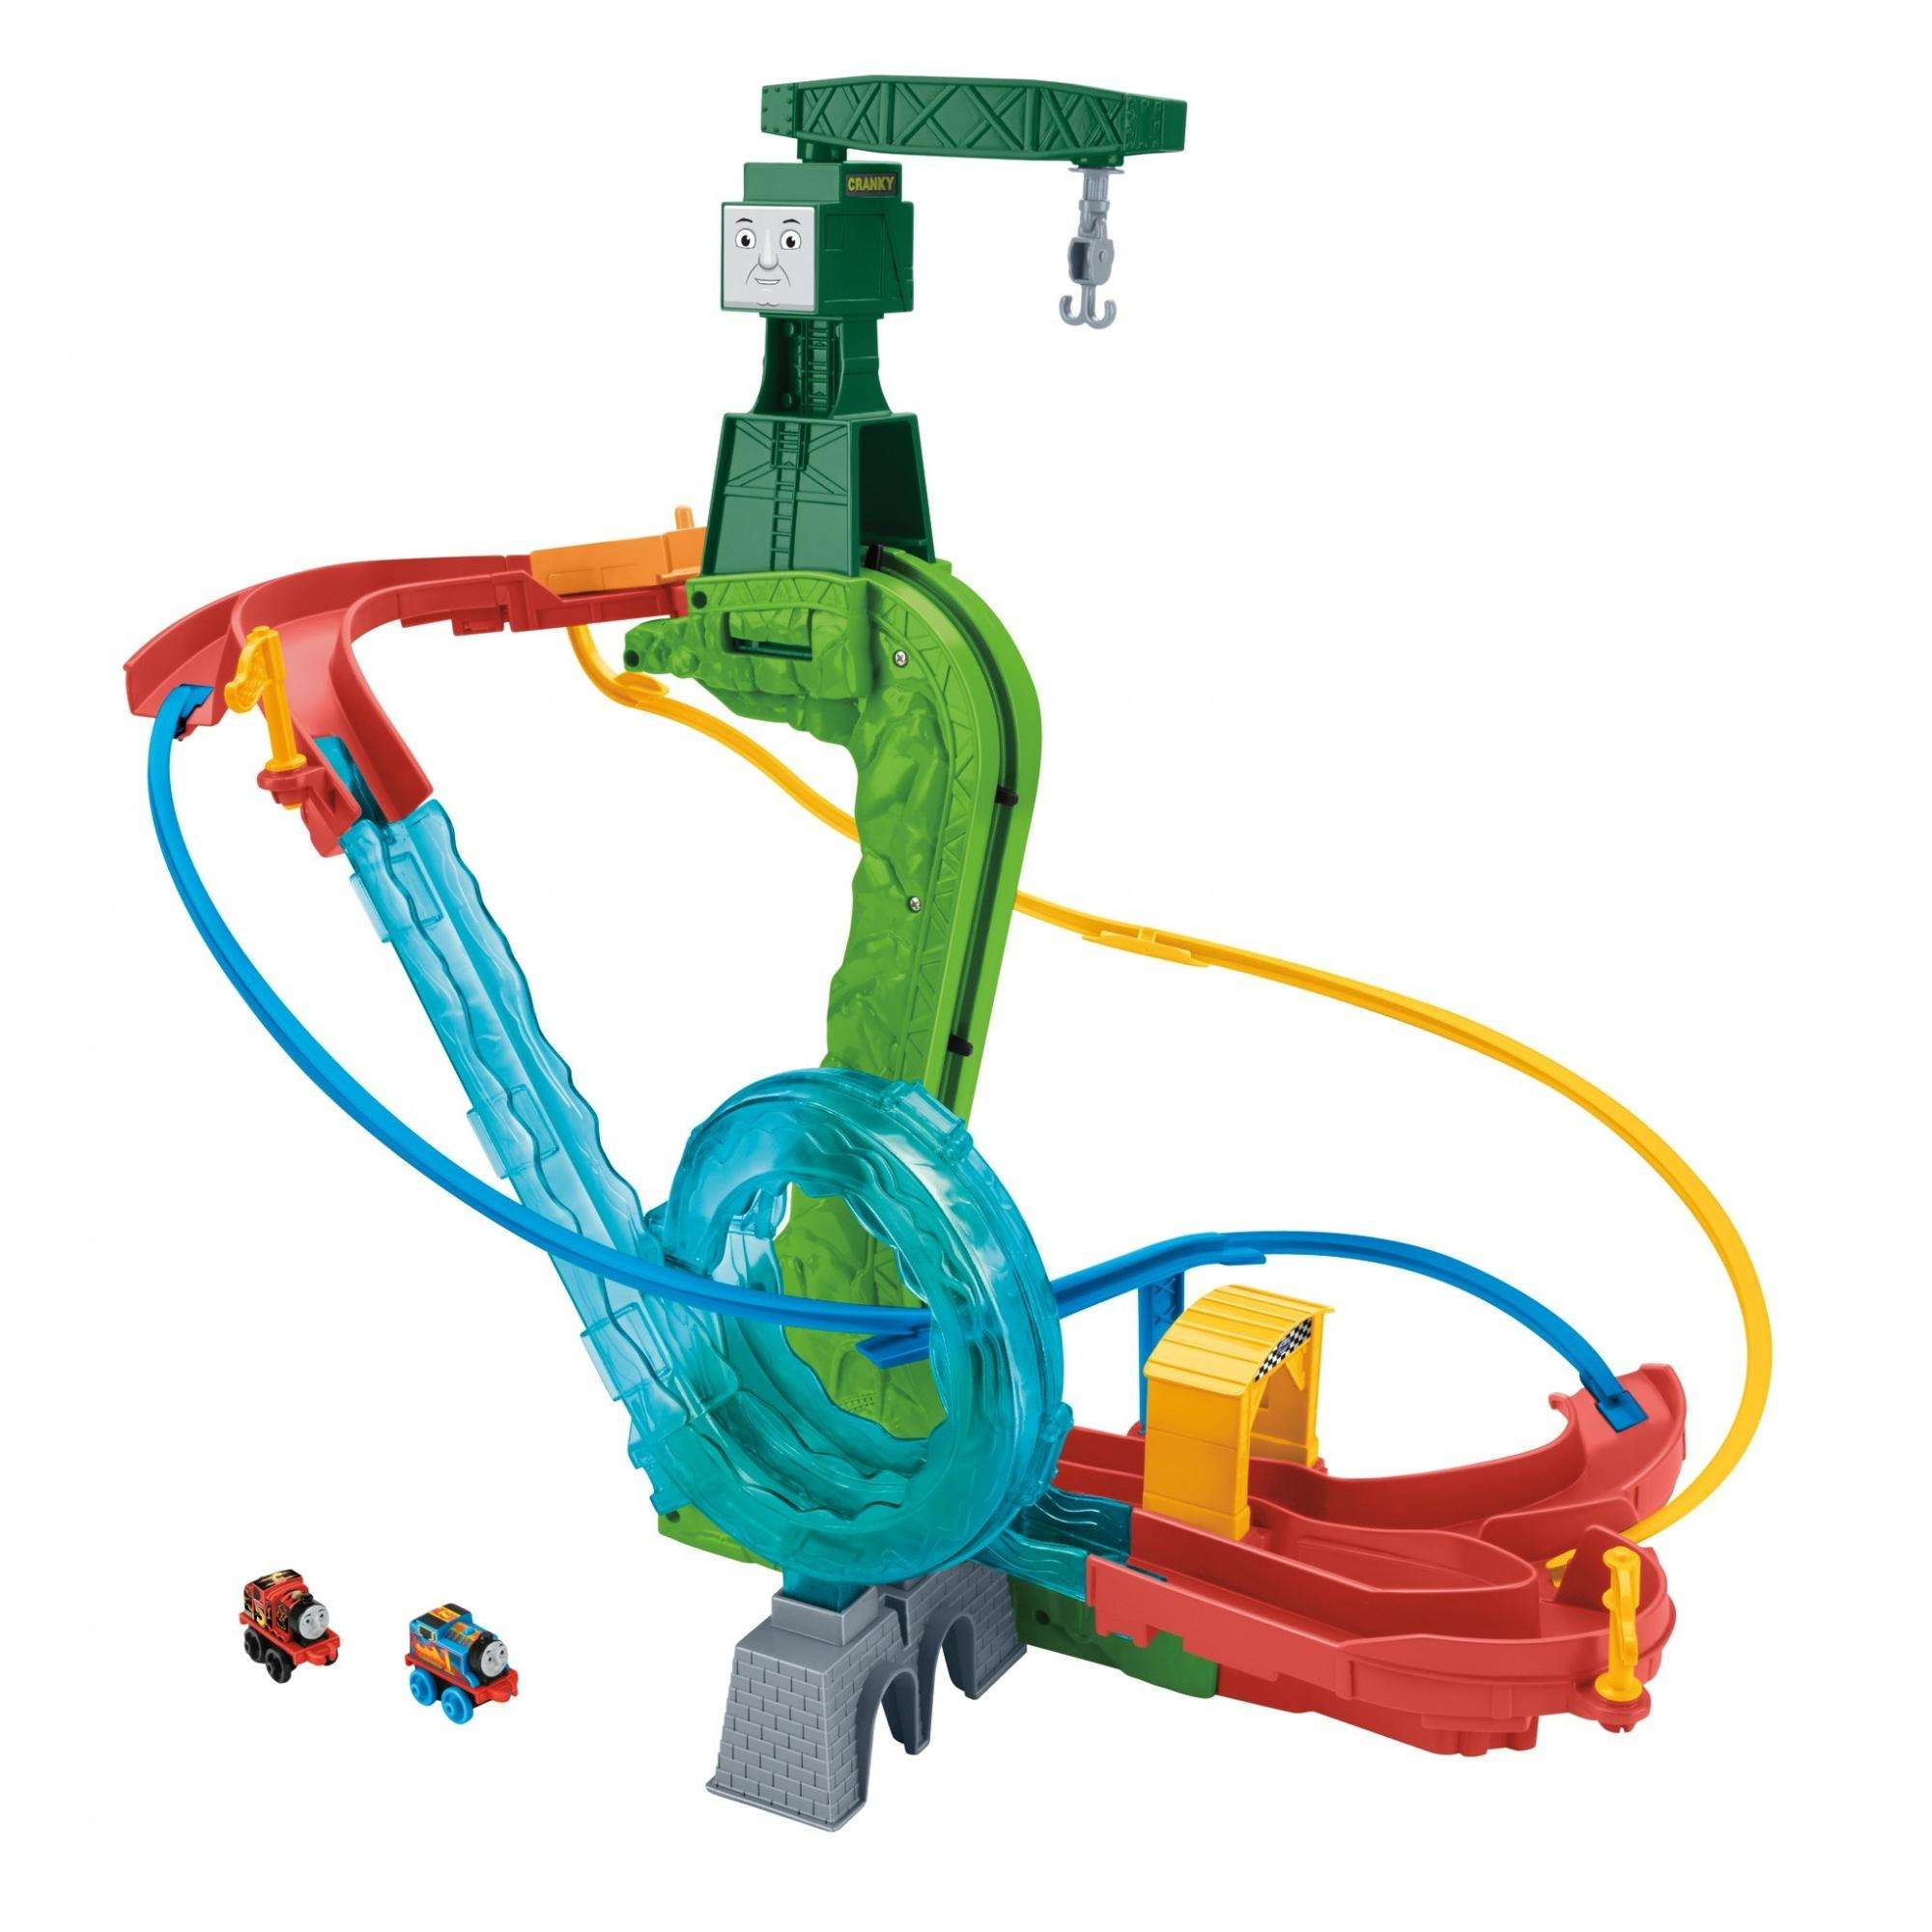 Thomas & Friends MINIS Motorized Raceway